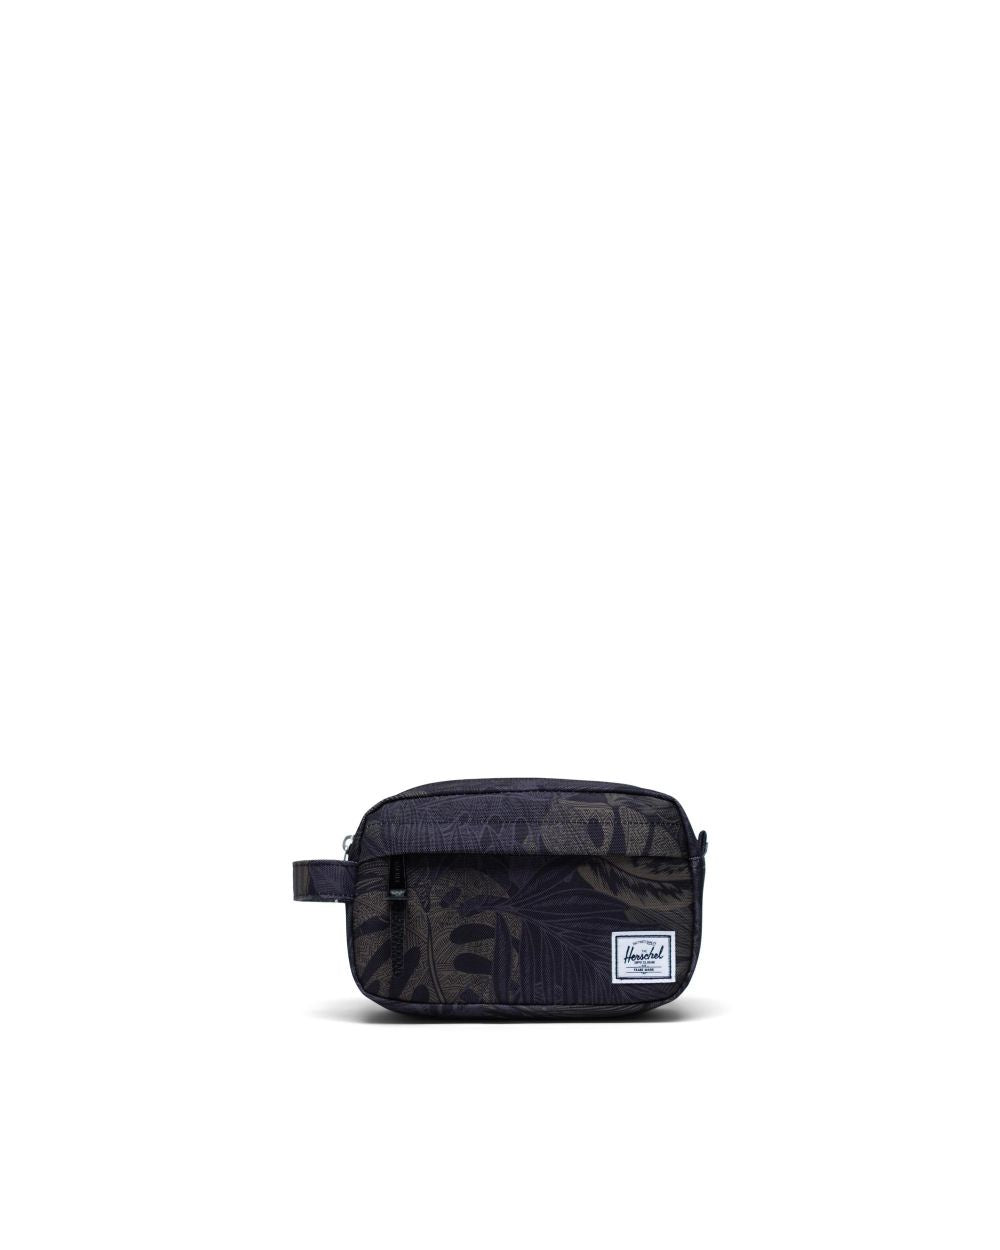 HERSCHEL - CHAPTER TRAVEL KIT CARRY ON IN DARK JUNGLE